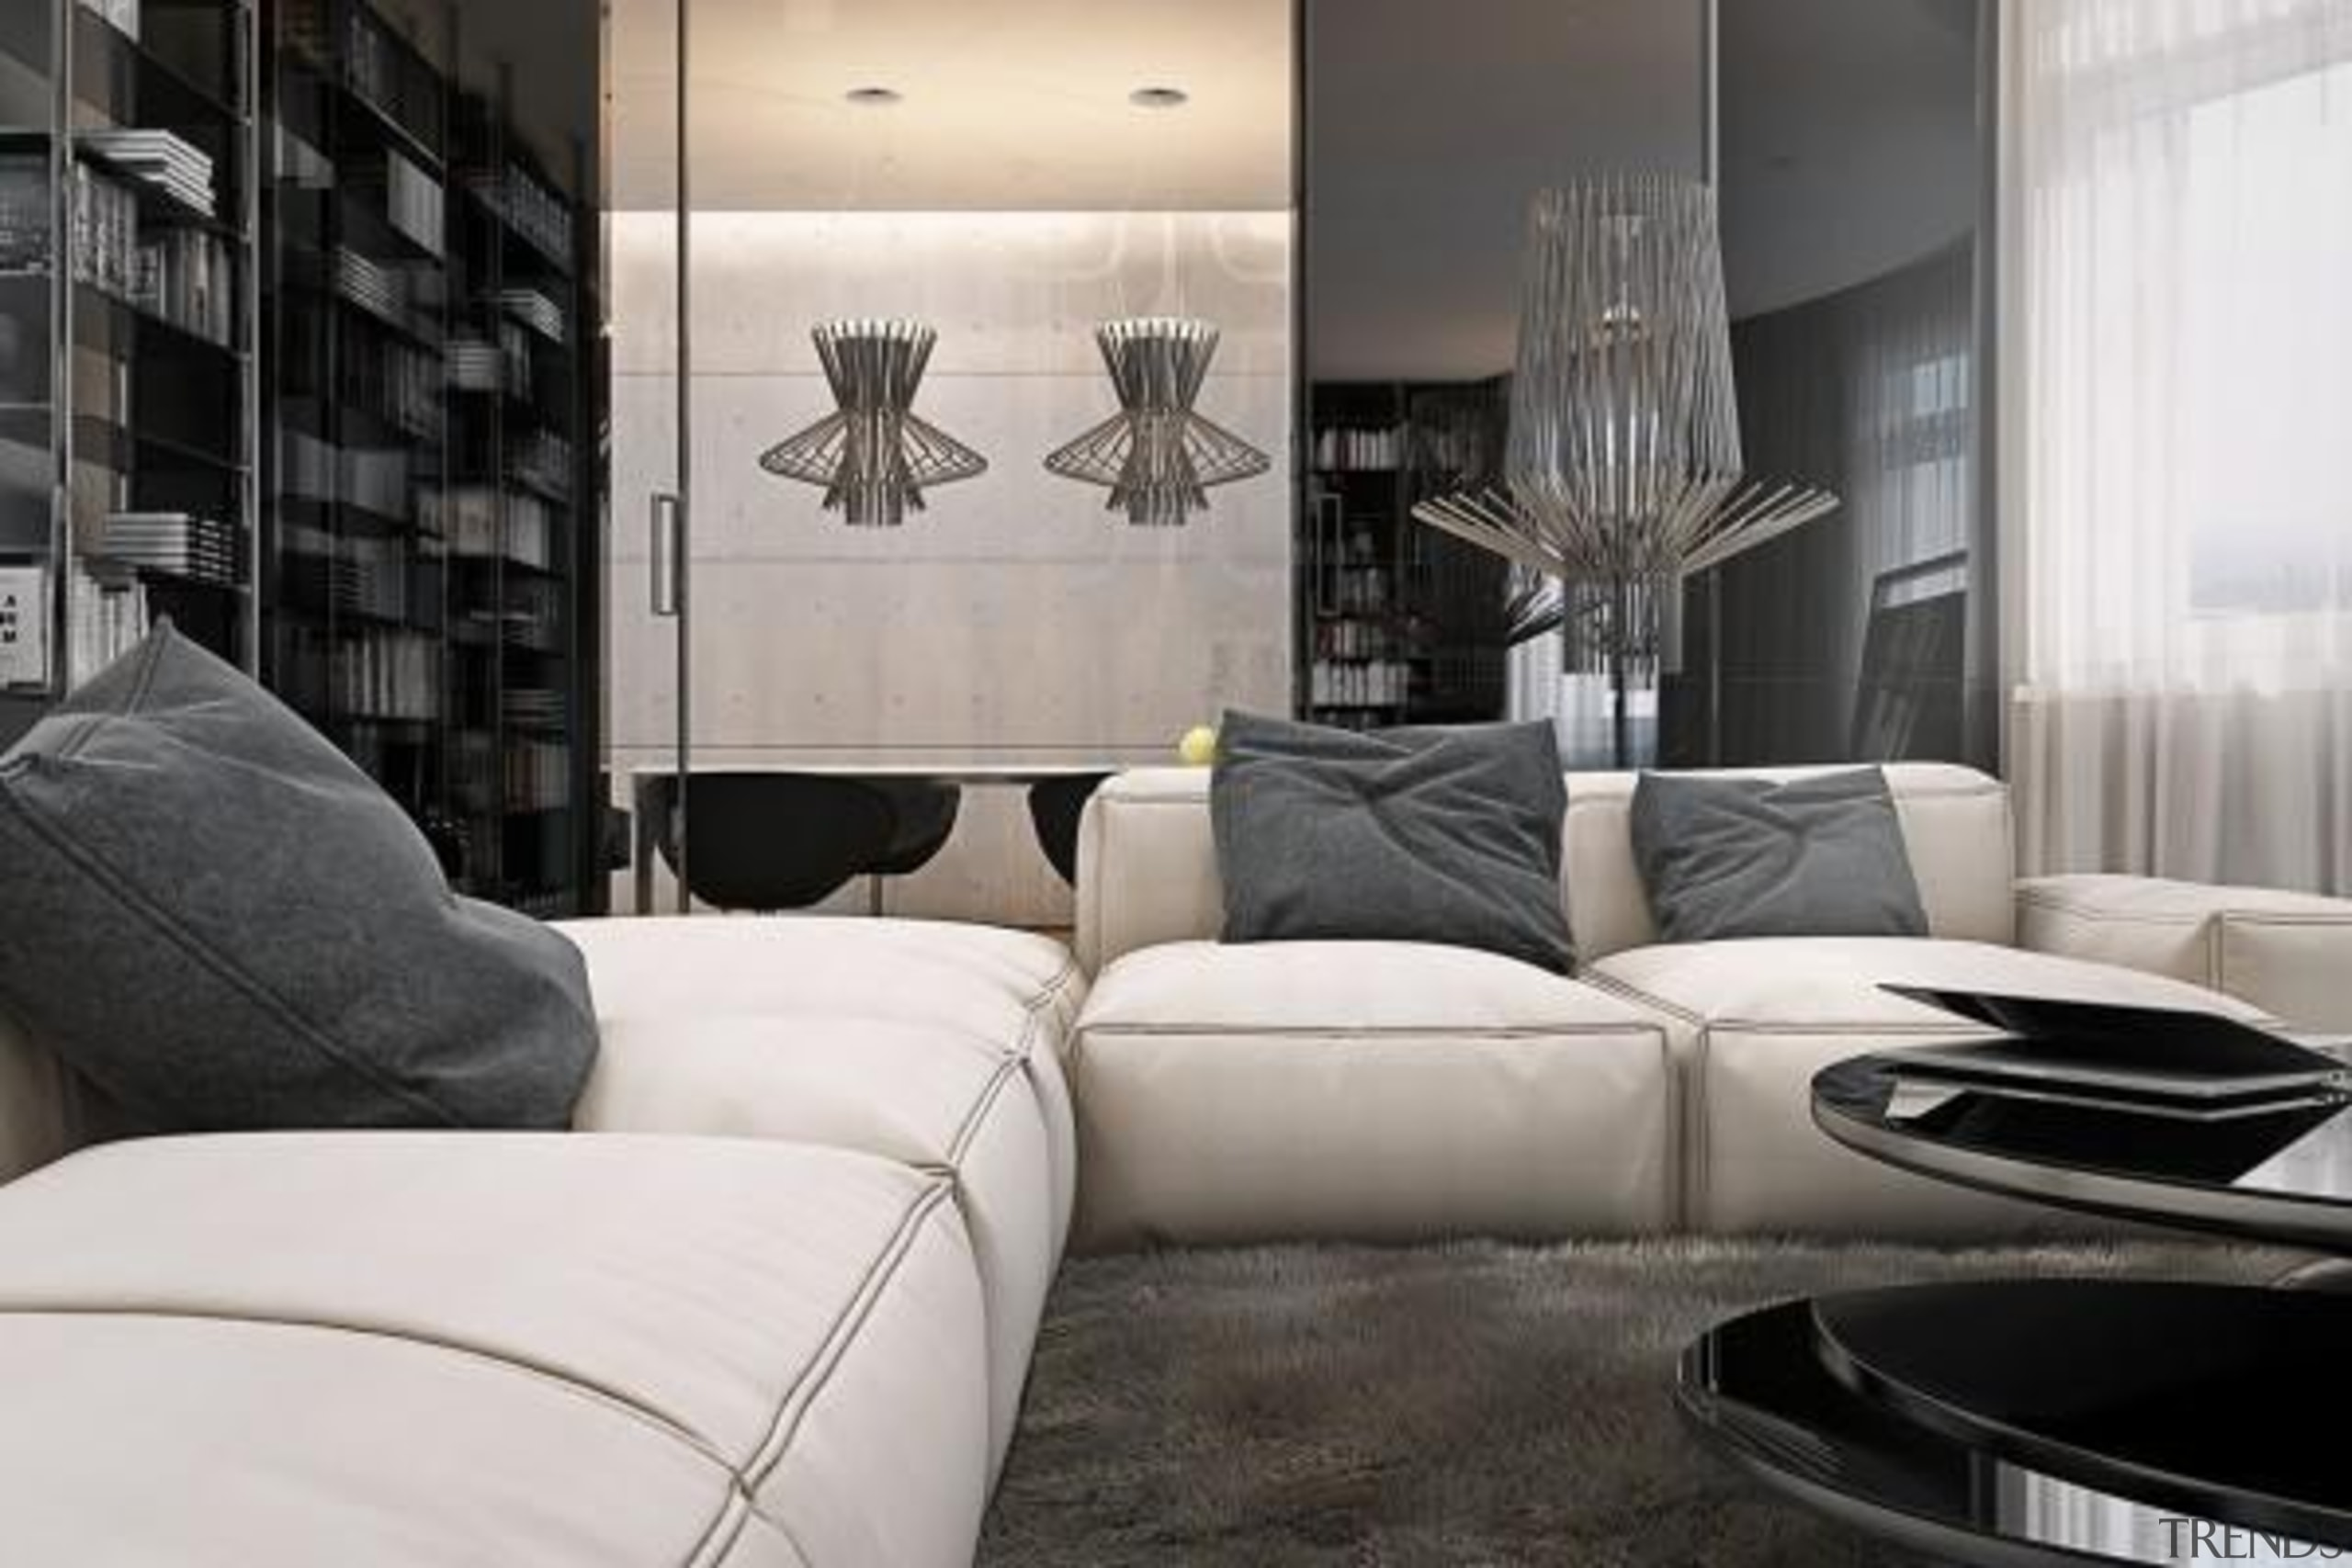 soft shag carpet - Masculine Apartments - angle angle, couch, furniture, home, interior design, living room, room, wall, white, black